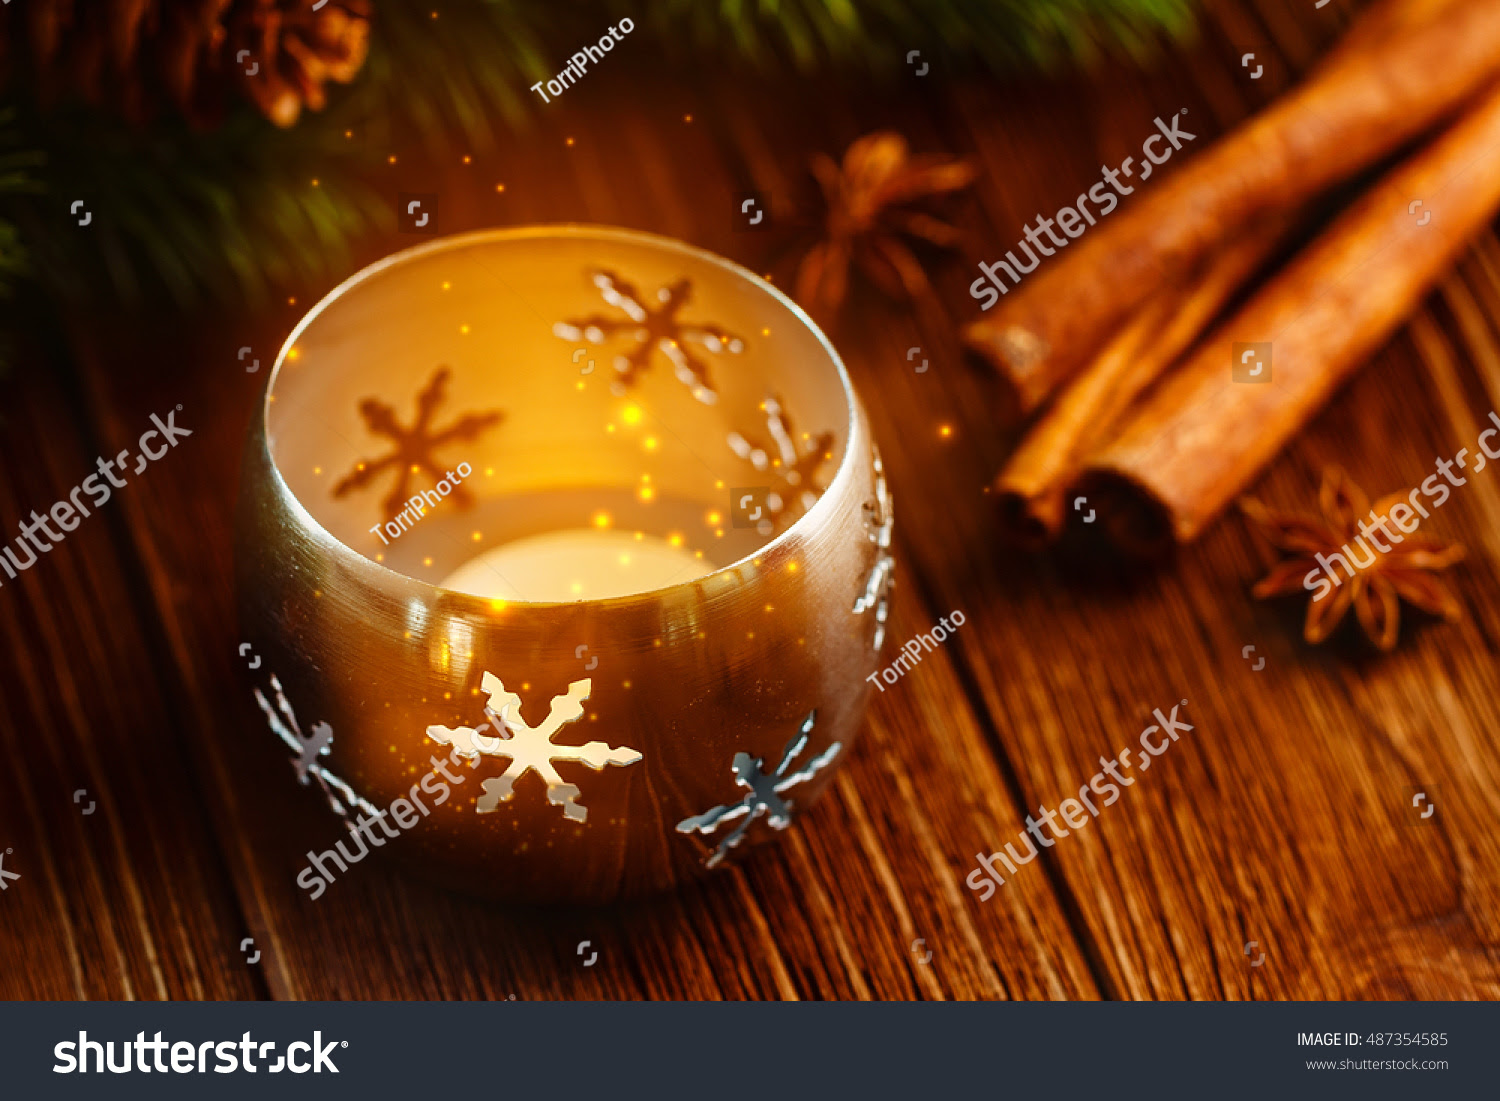 Burning candle lantern with magical shine lights. Rustic Christmas background